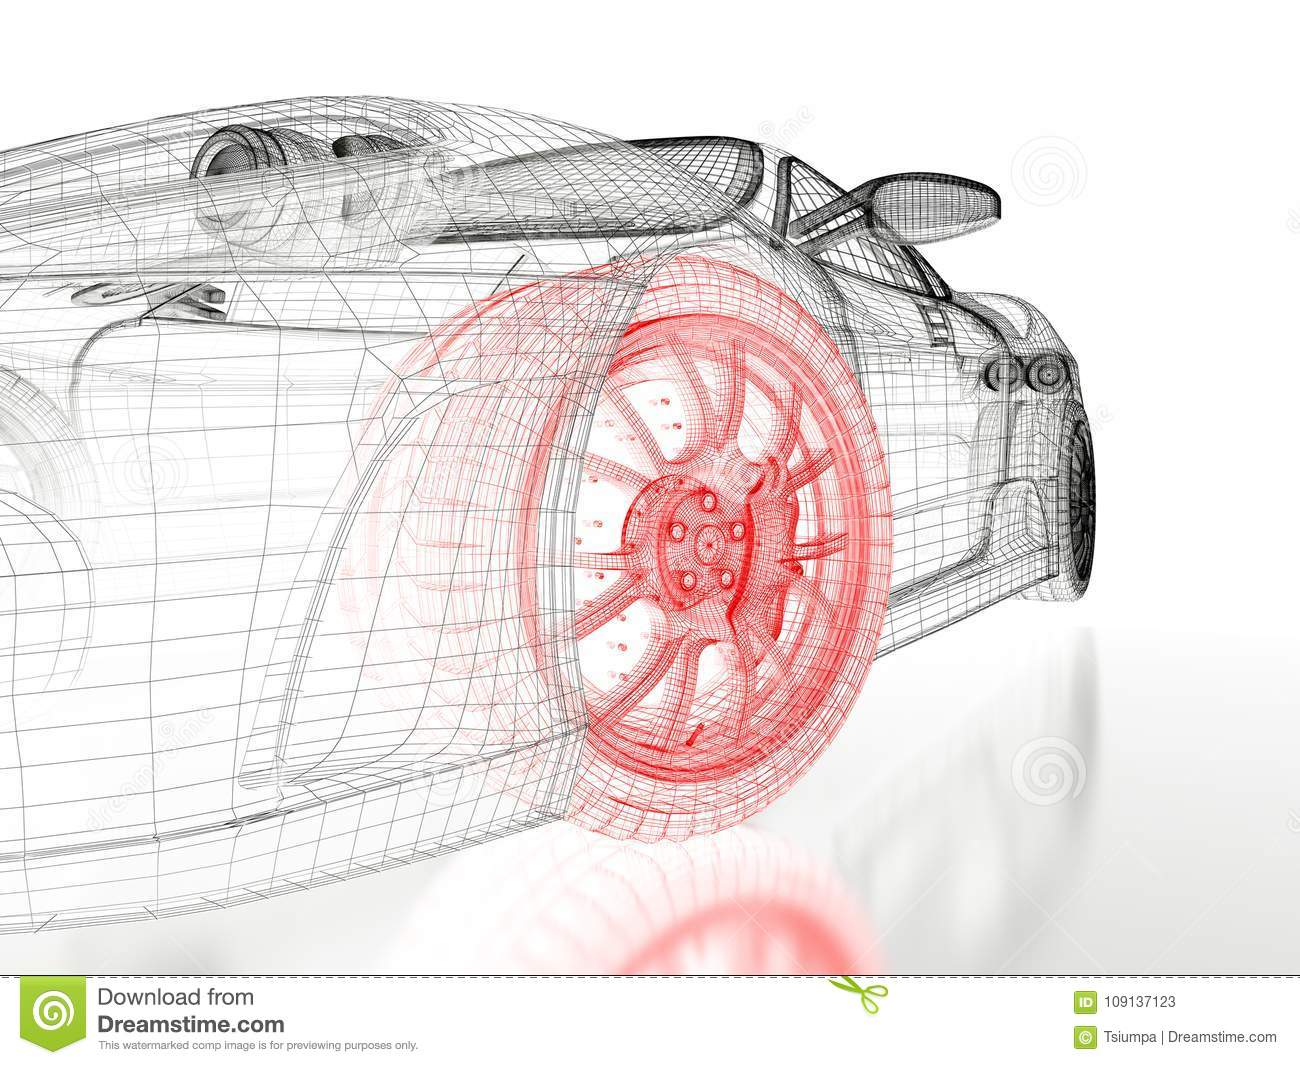 hight resolution of car vehicle 3d blueprint mesh model with a red wheel tire on a white background 3d rendered image